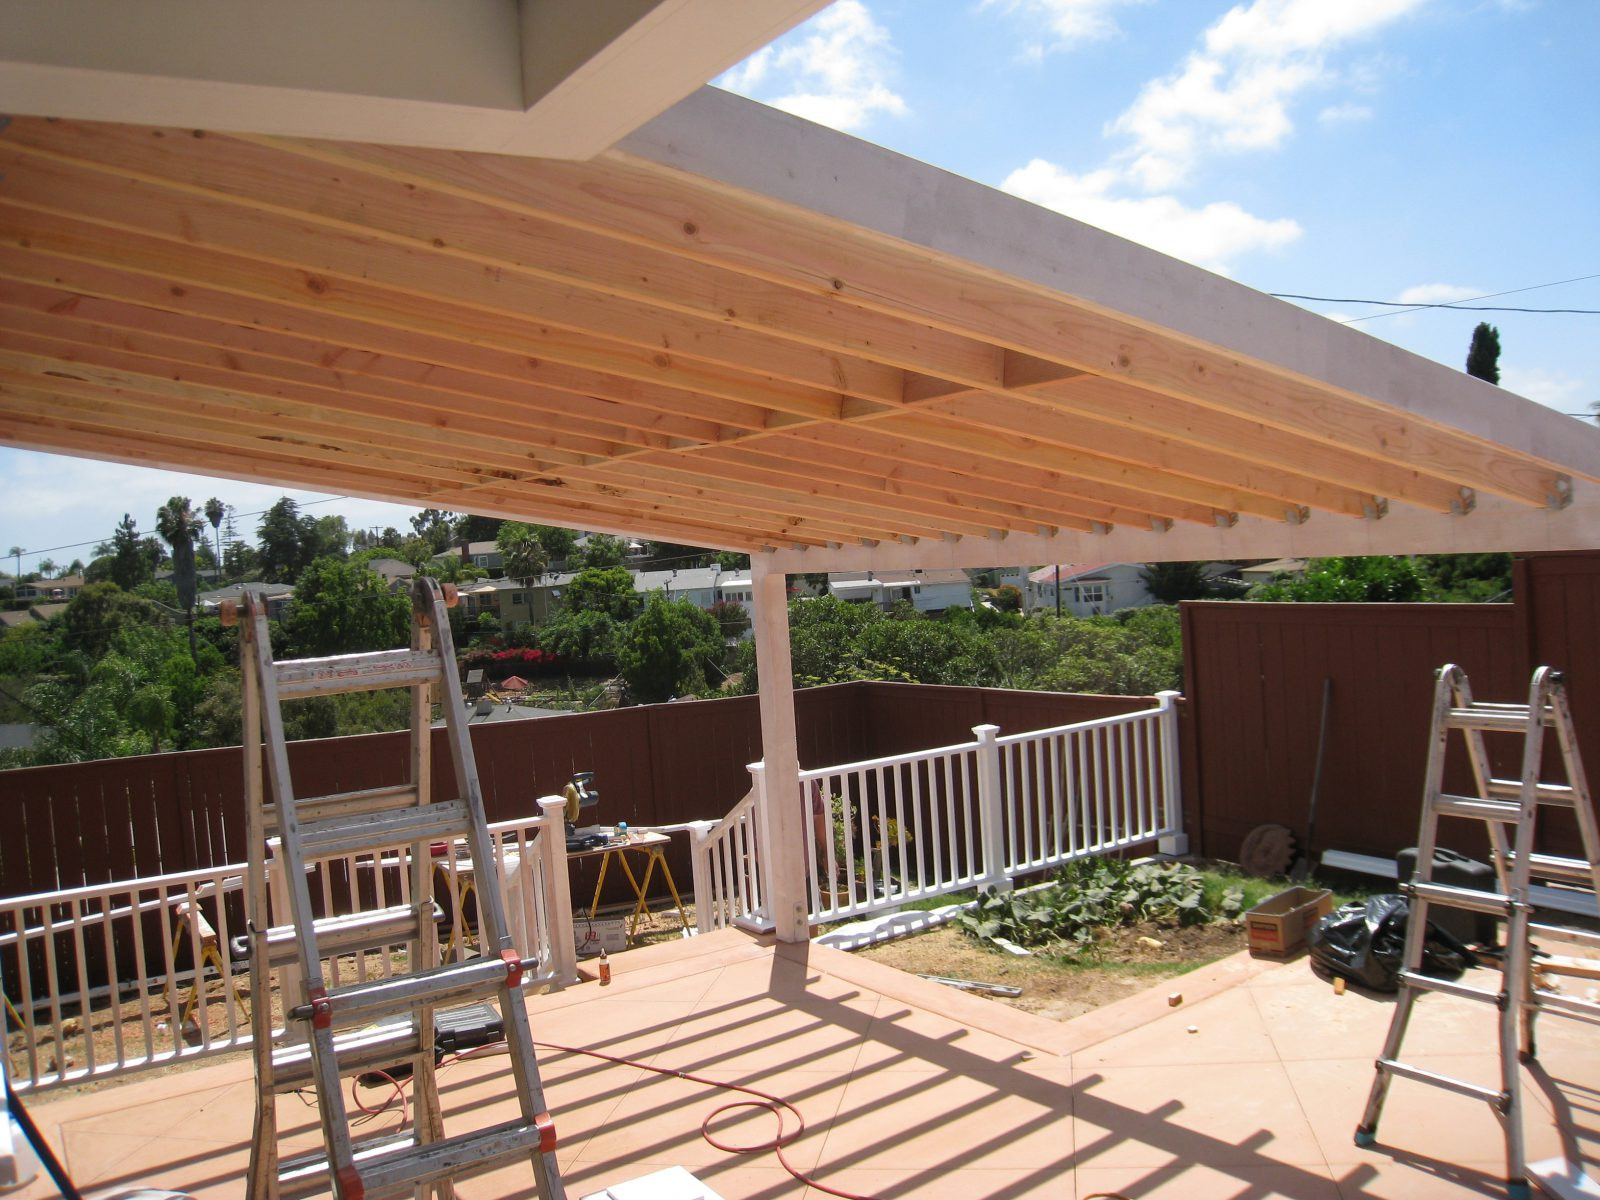 Best ideas about Wood Patio Covers . Save or Pin Wooden Beams for Pergolas Roof Dap fice Dap fice Now.